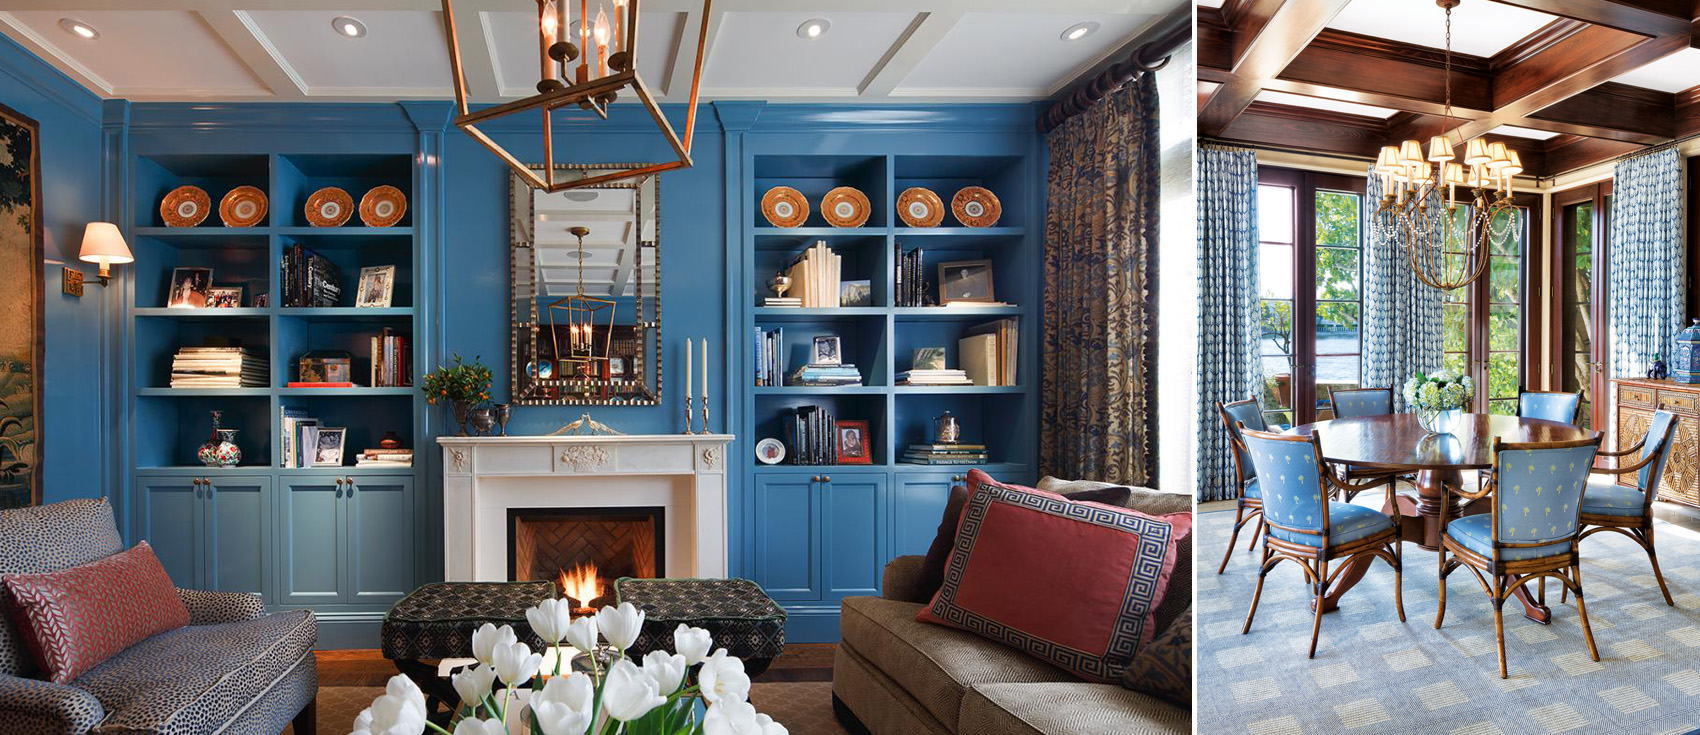 Blue Decor | Decorating with Blue